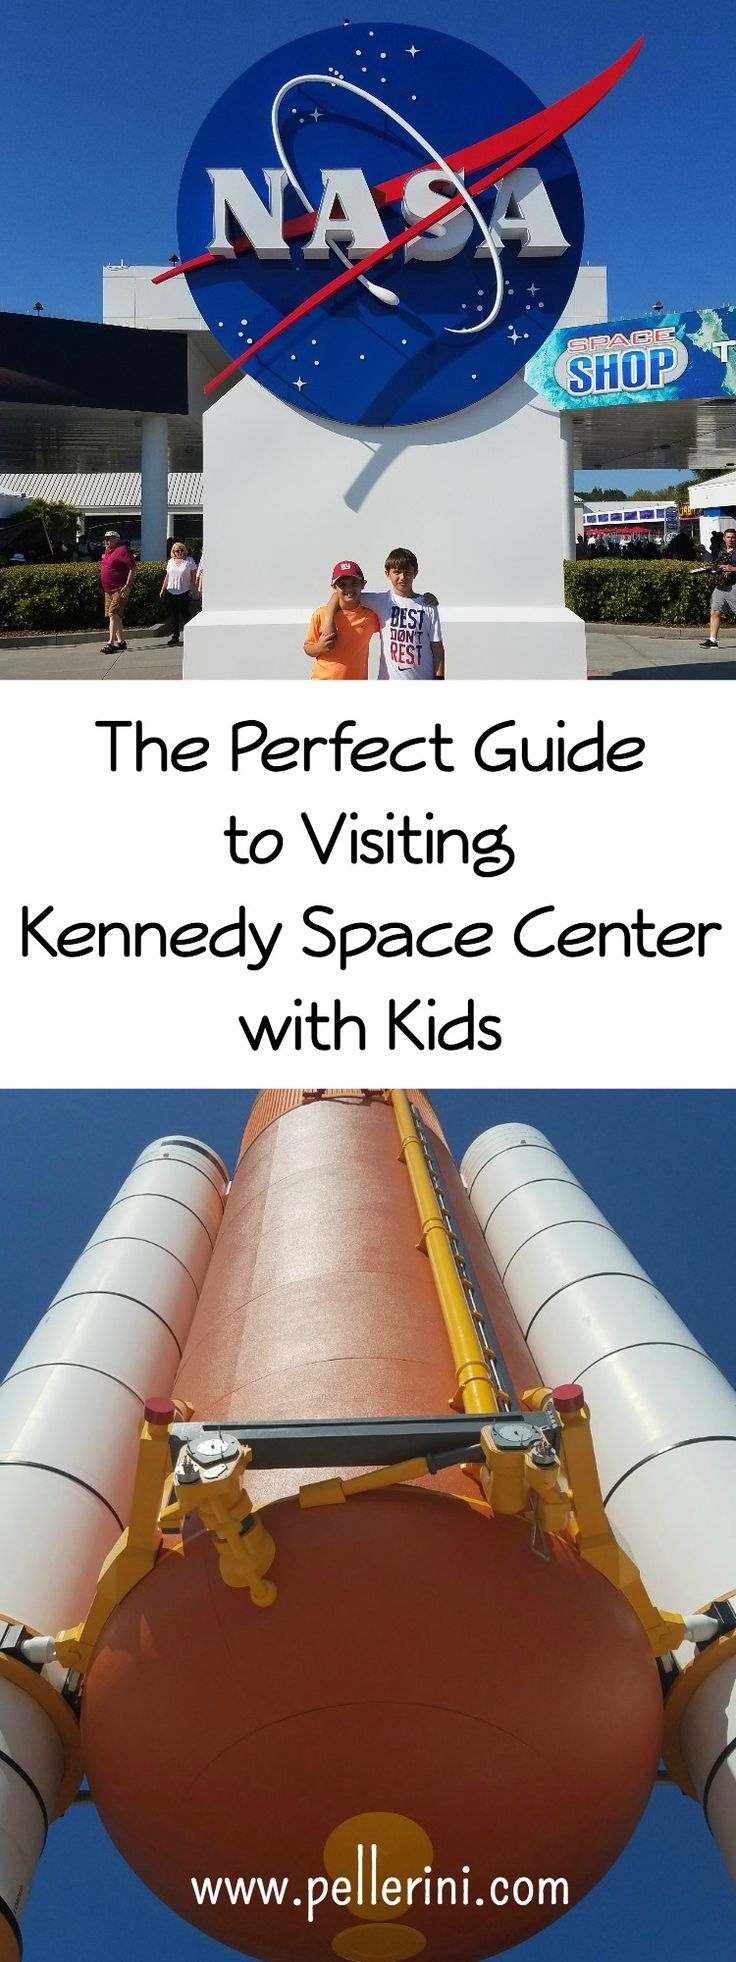 Planning on visiting Kennedy Space Center with the family?  (If not, you should highly consider it!)  Check out my guide on how to prepare and what to see and do!